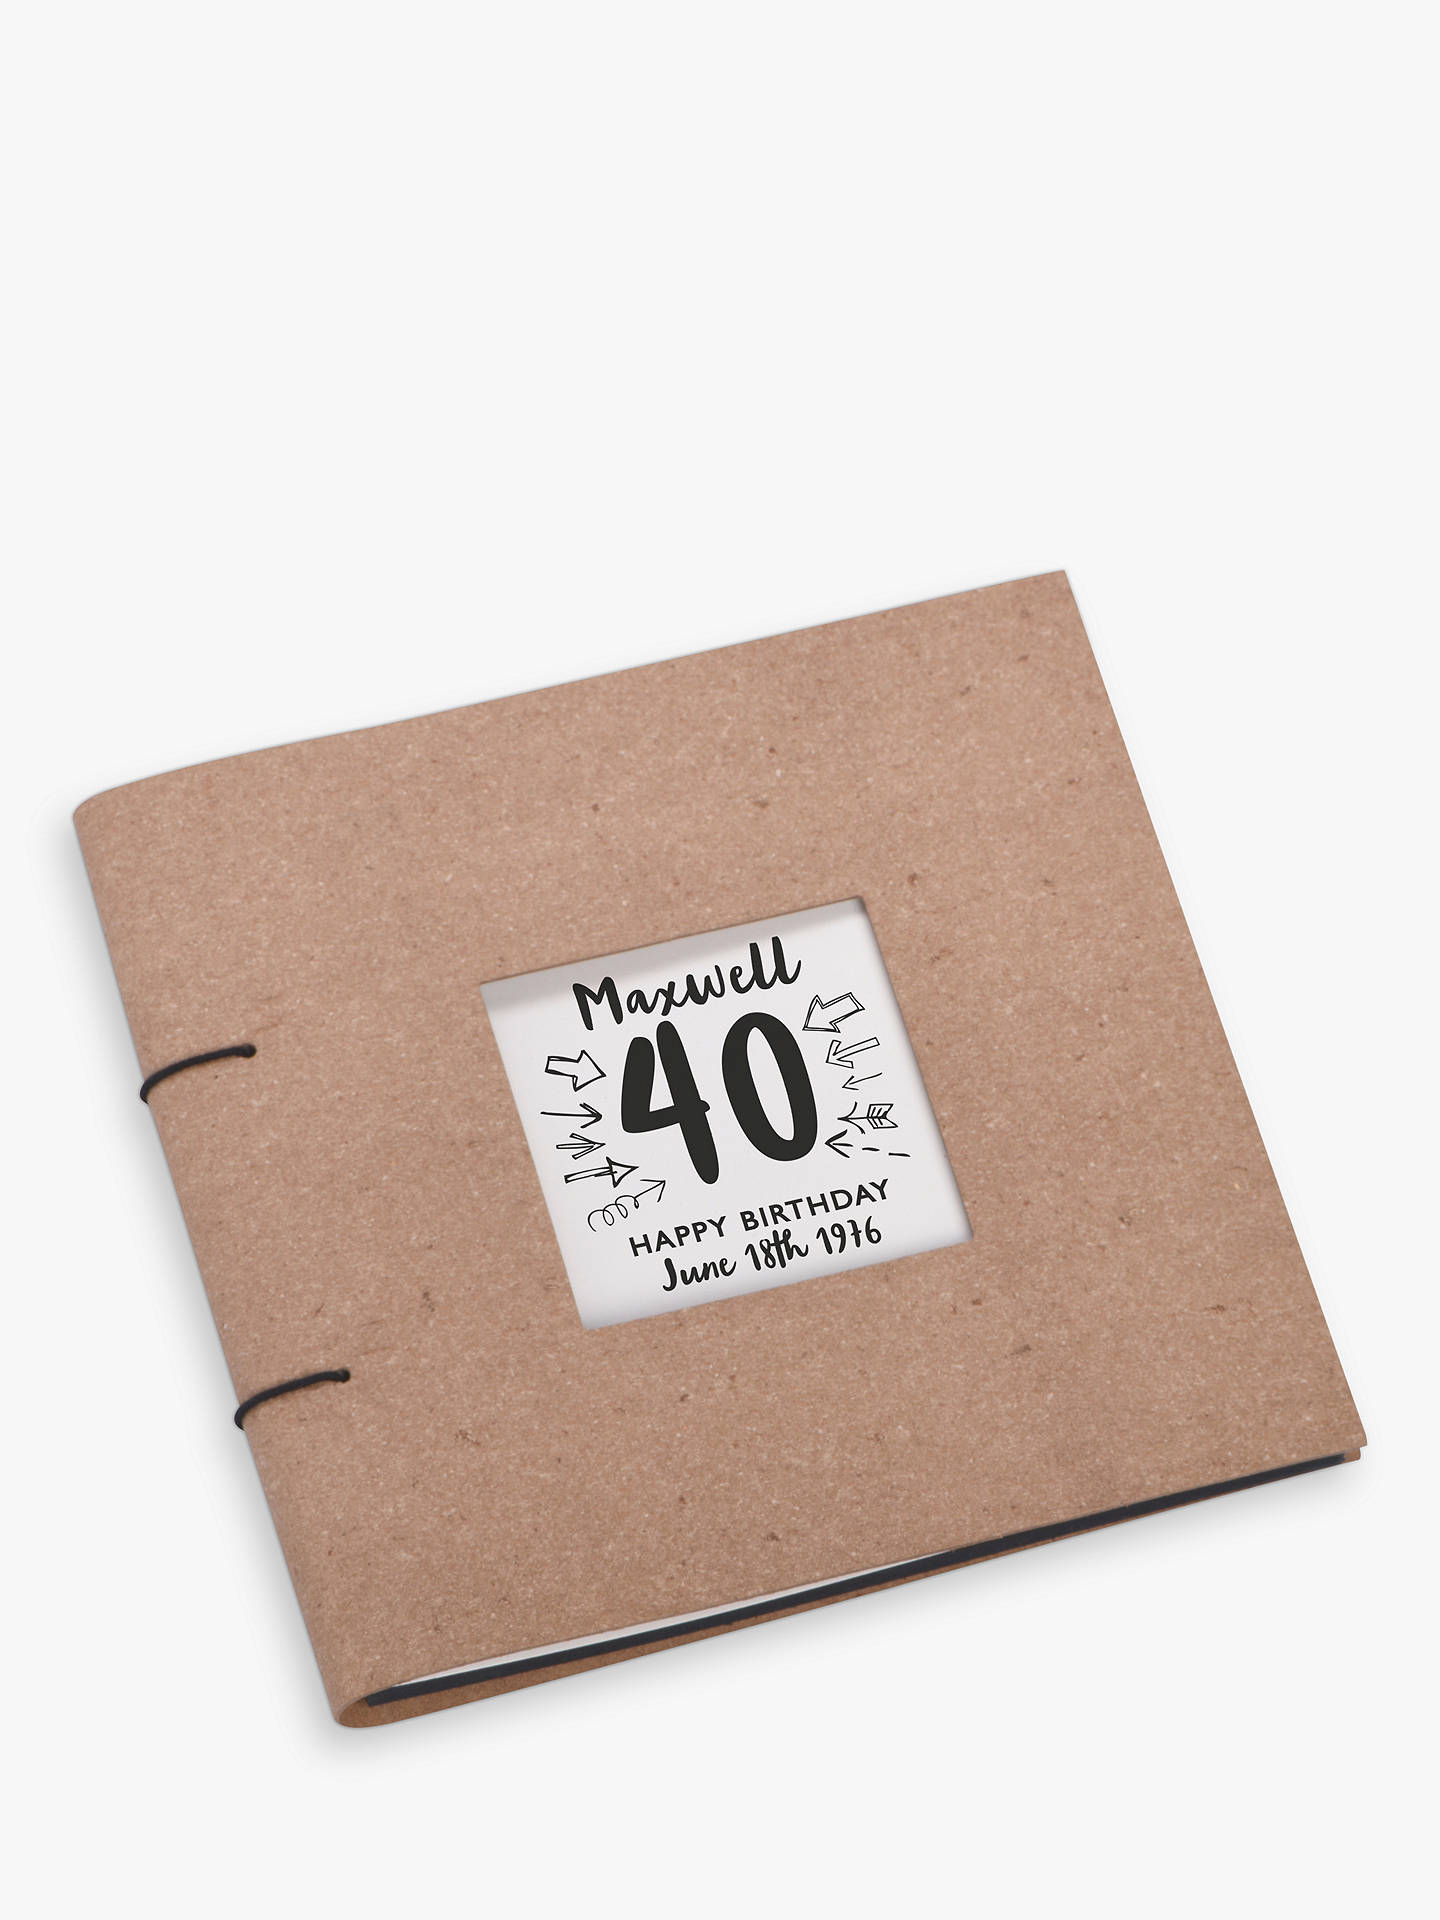 Buy Letterfest Personalised Birthday Leather Photo Album Online at johnlewis.com